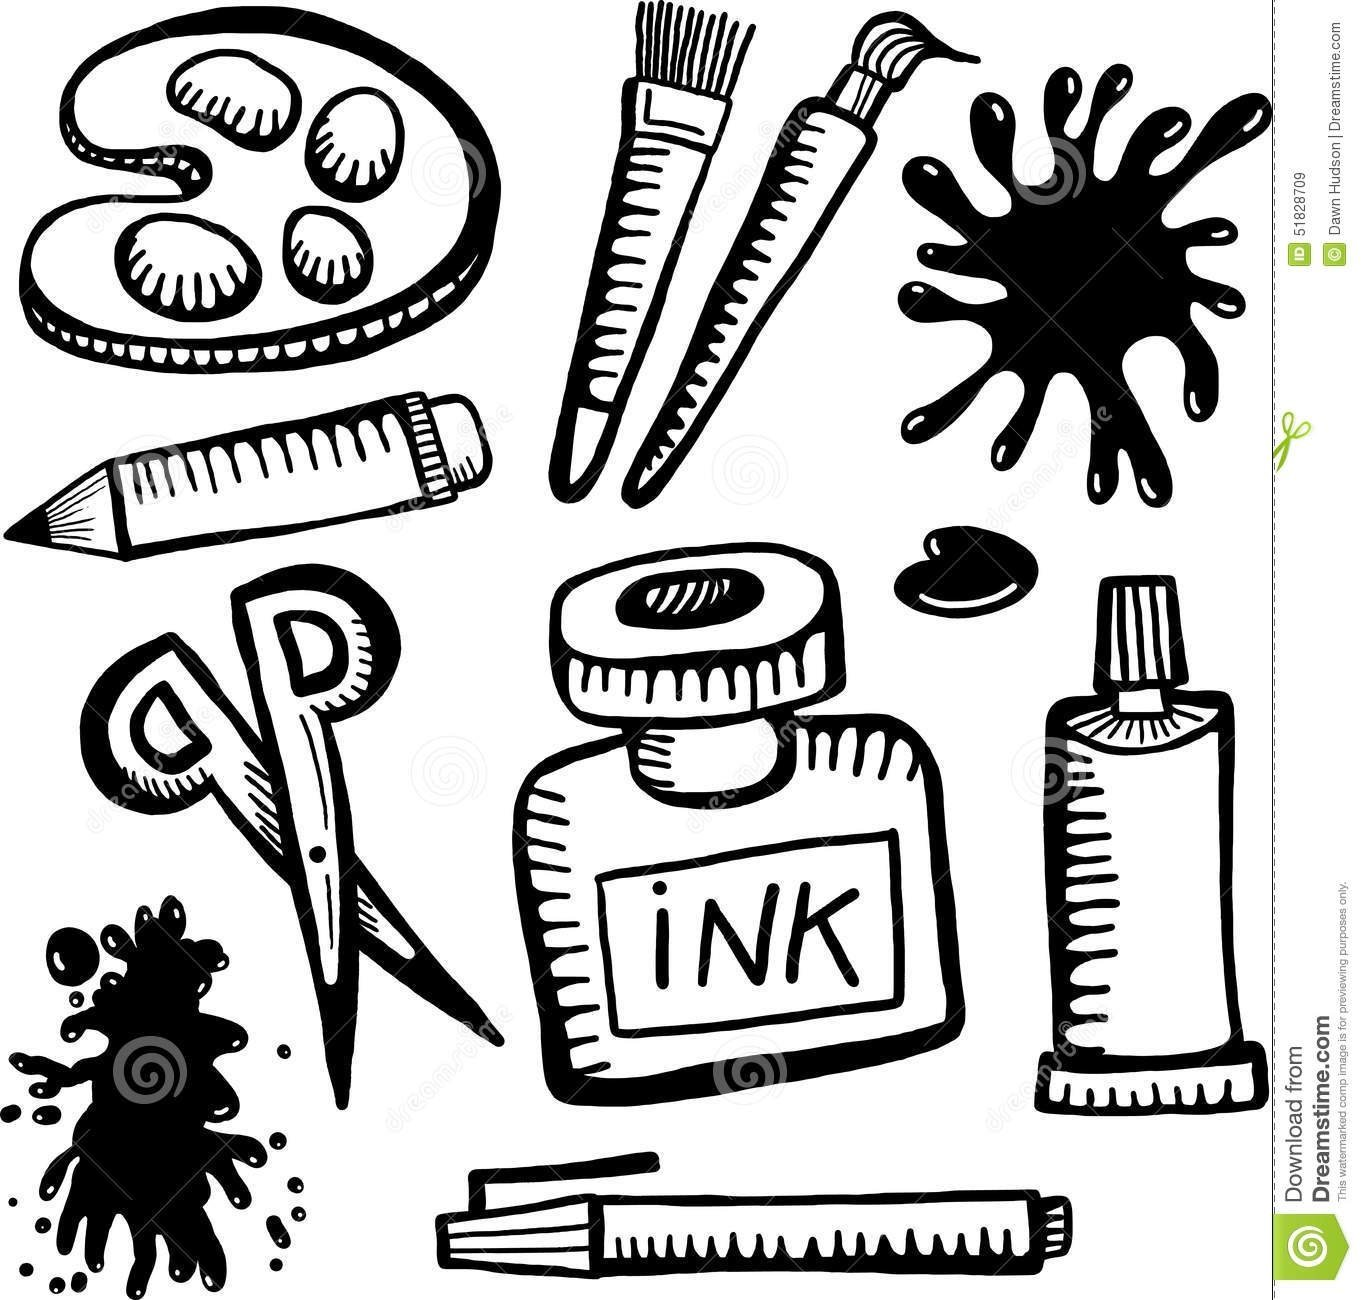 Arts and crafts clipart black and white transparent download Arts and crafts clipart black and white 6 » Clipart Portal transparent download